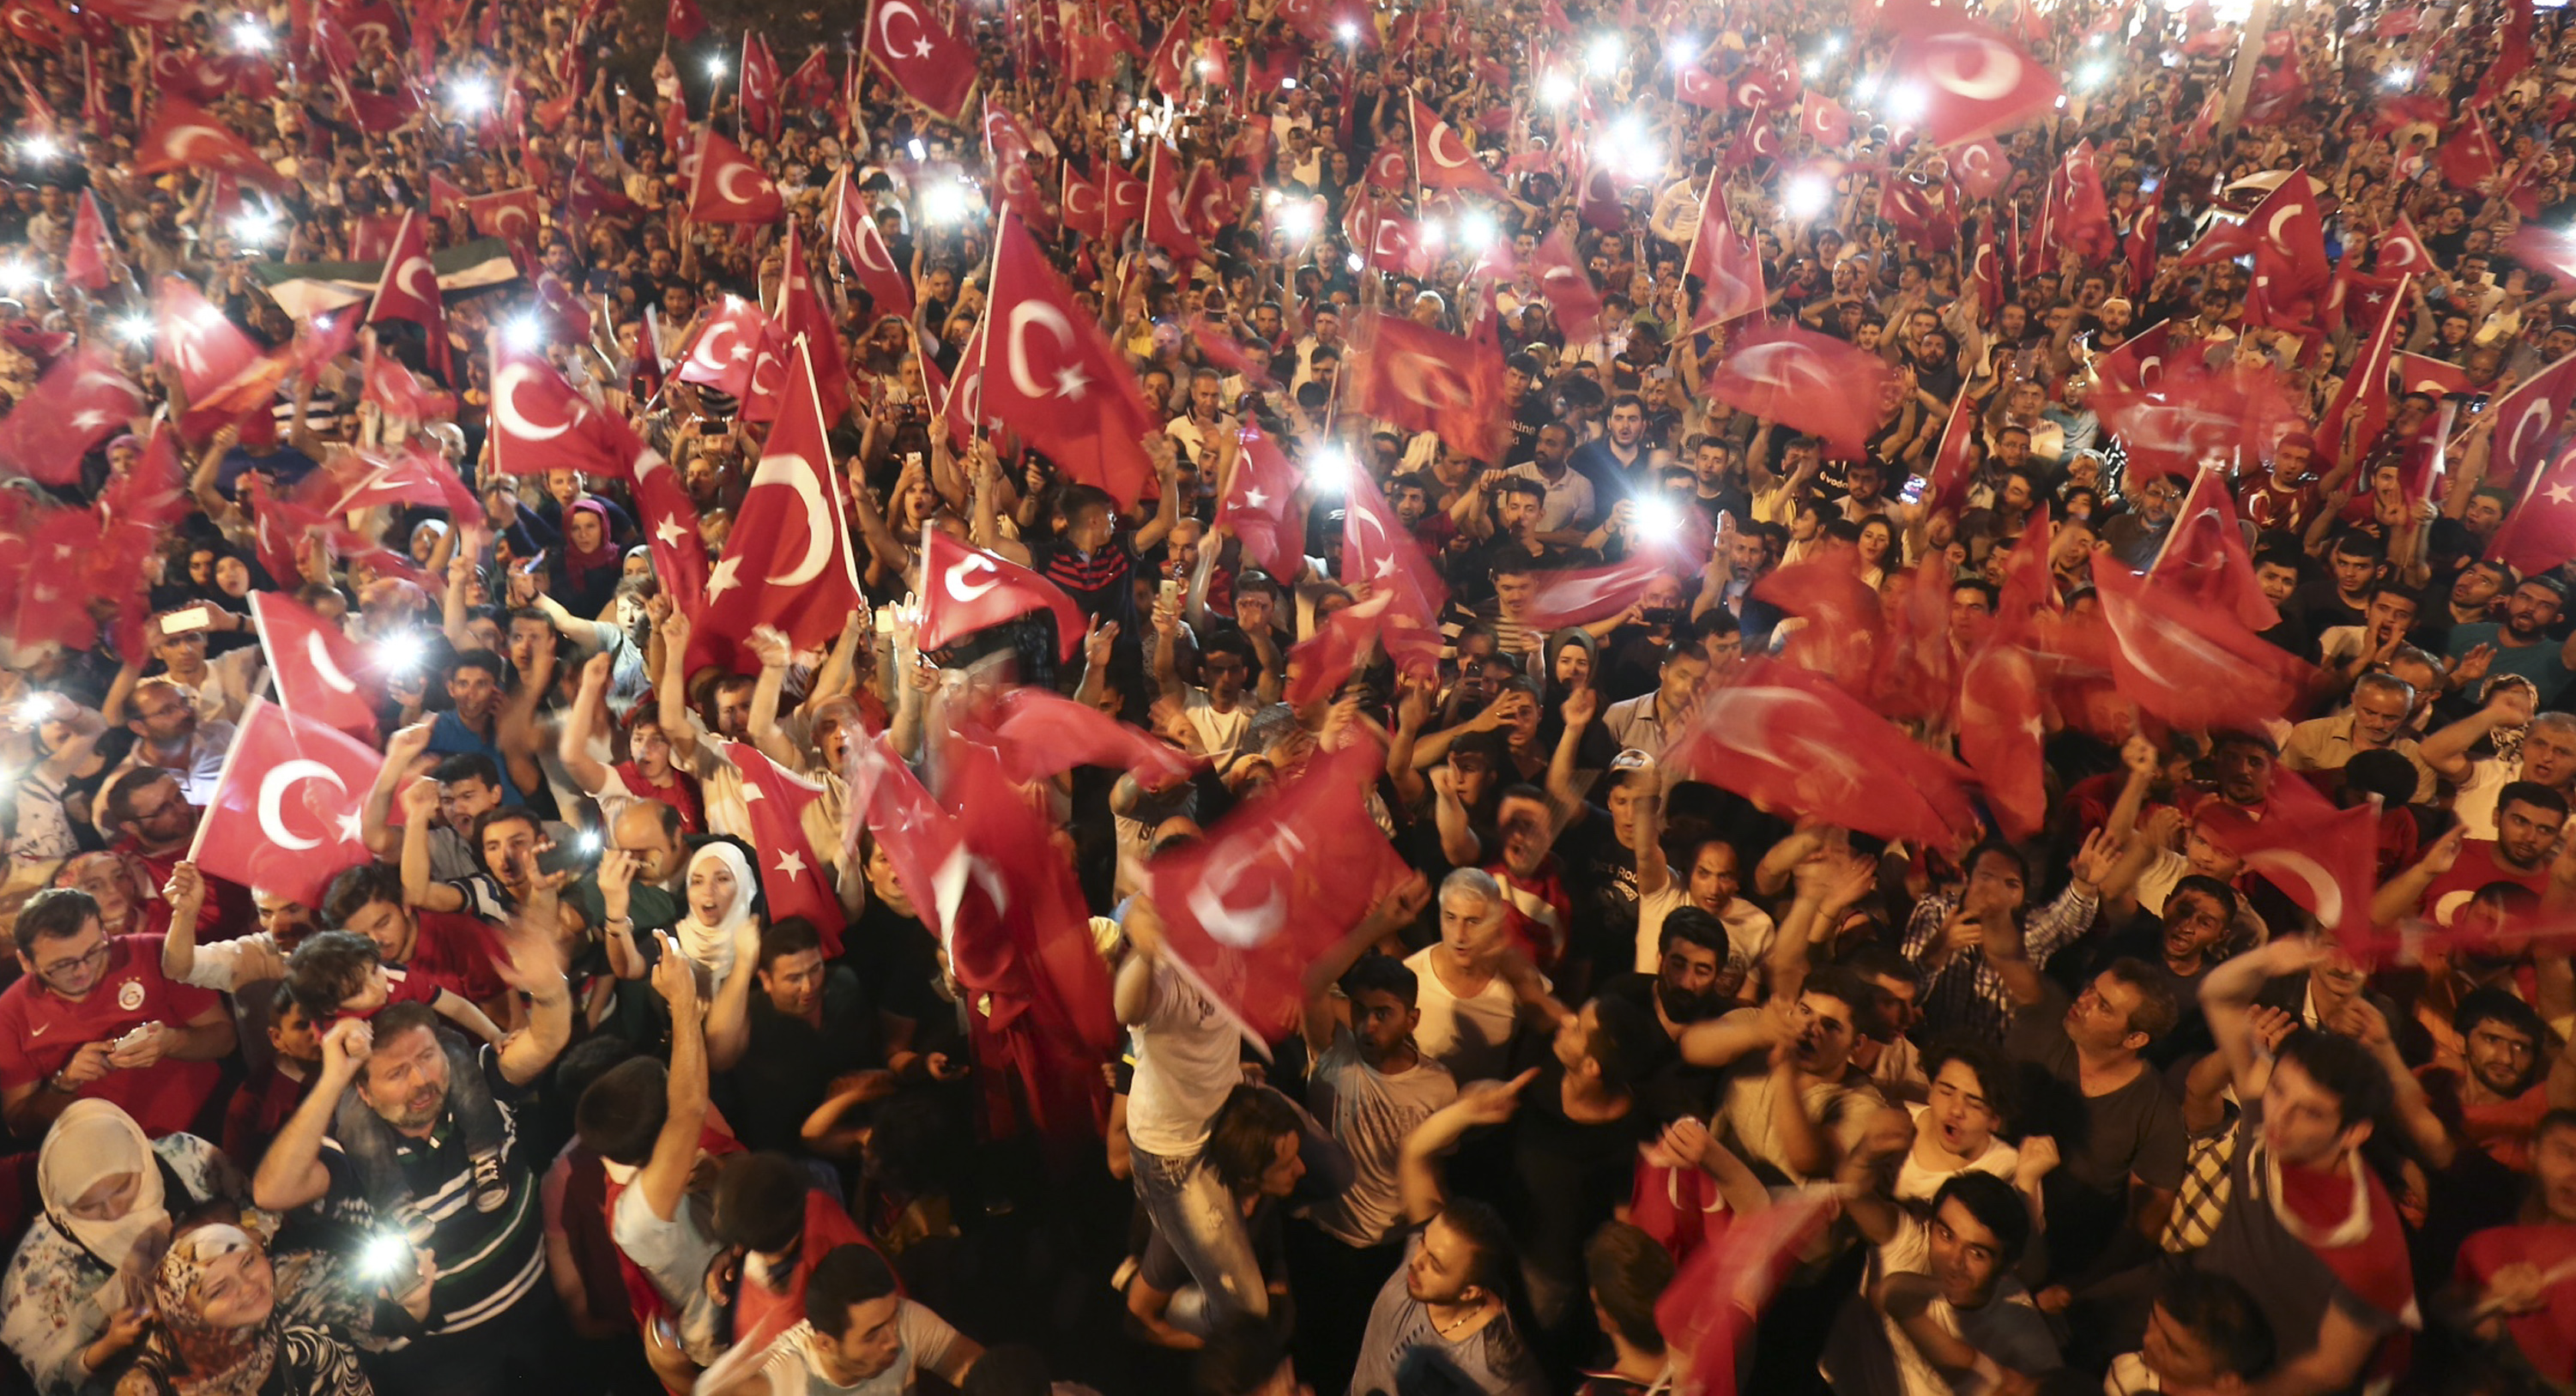 Following a social media blackout, people gather on Taksim Square in Istanbul, Turkey.